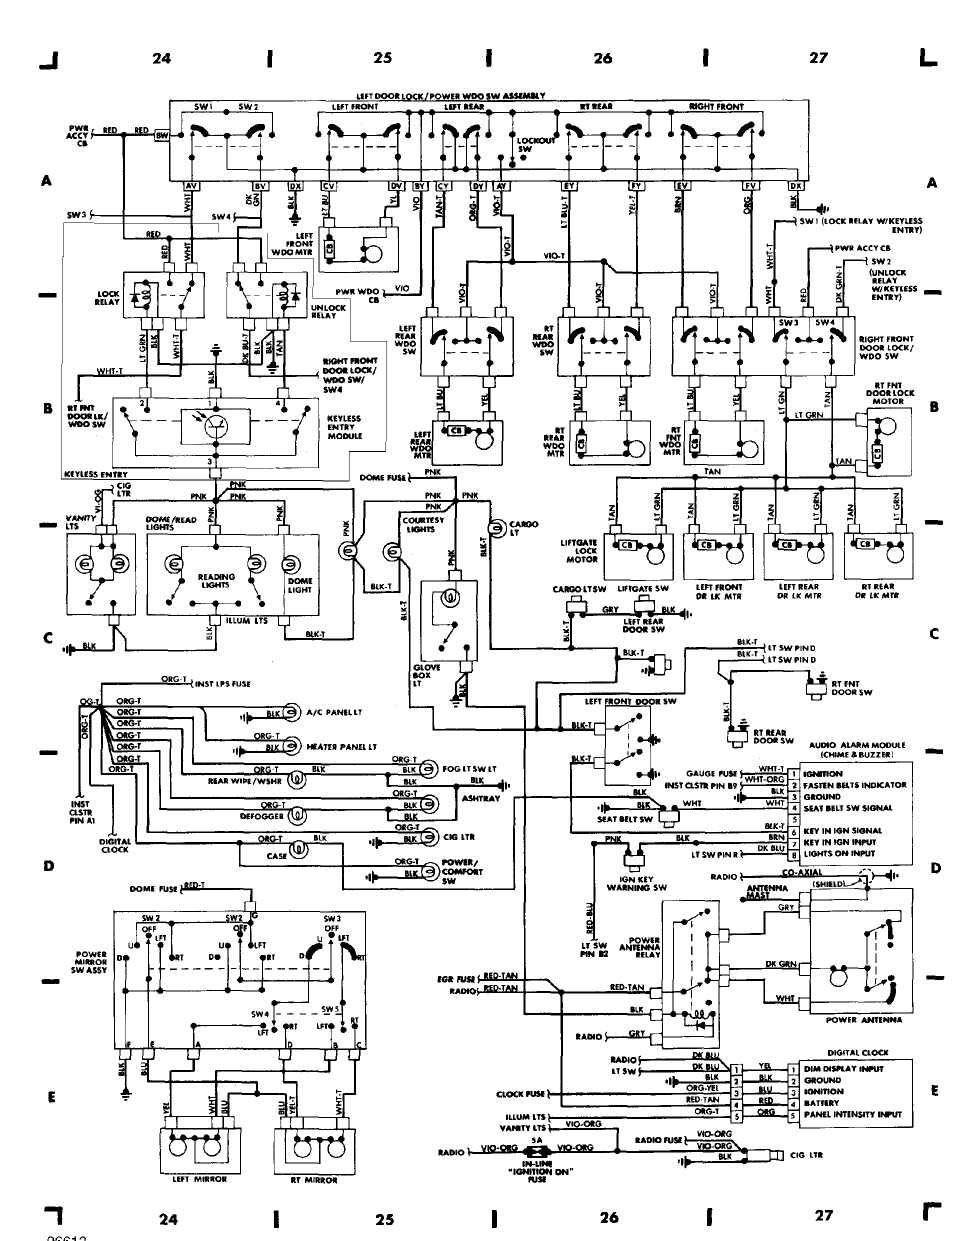 wiring_diagrams_html_61f5e0ad wiring diagrams 1984 1991 jeep cherokee (xj) jeep 1990 jeep grand wagoneer fuse box at alyssarenee.co